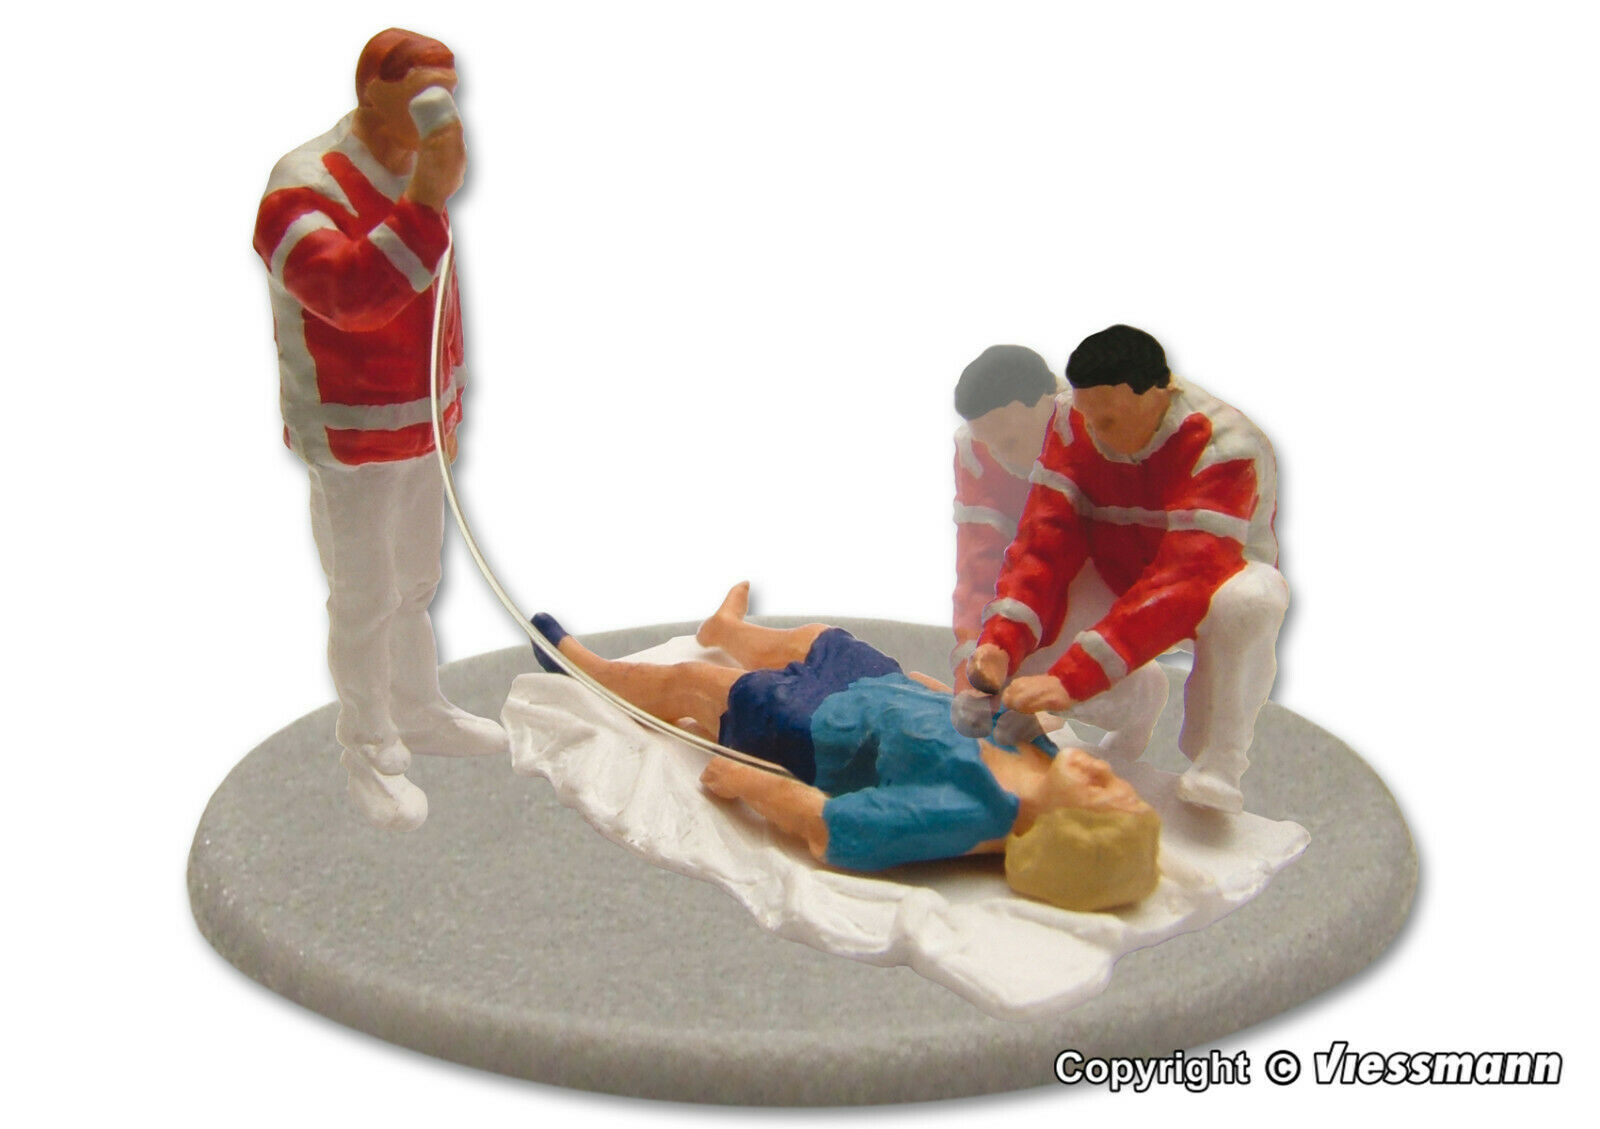 Viessmann eMotion Paramedics in Action 1540 HO Scale